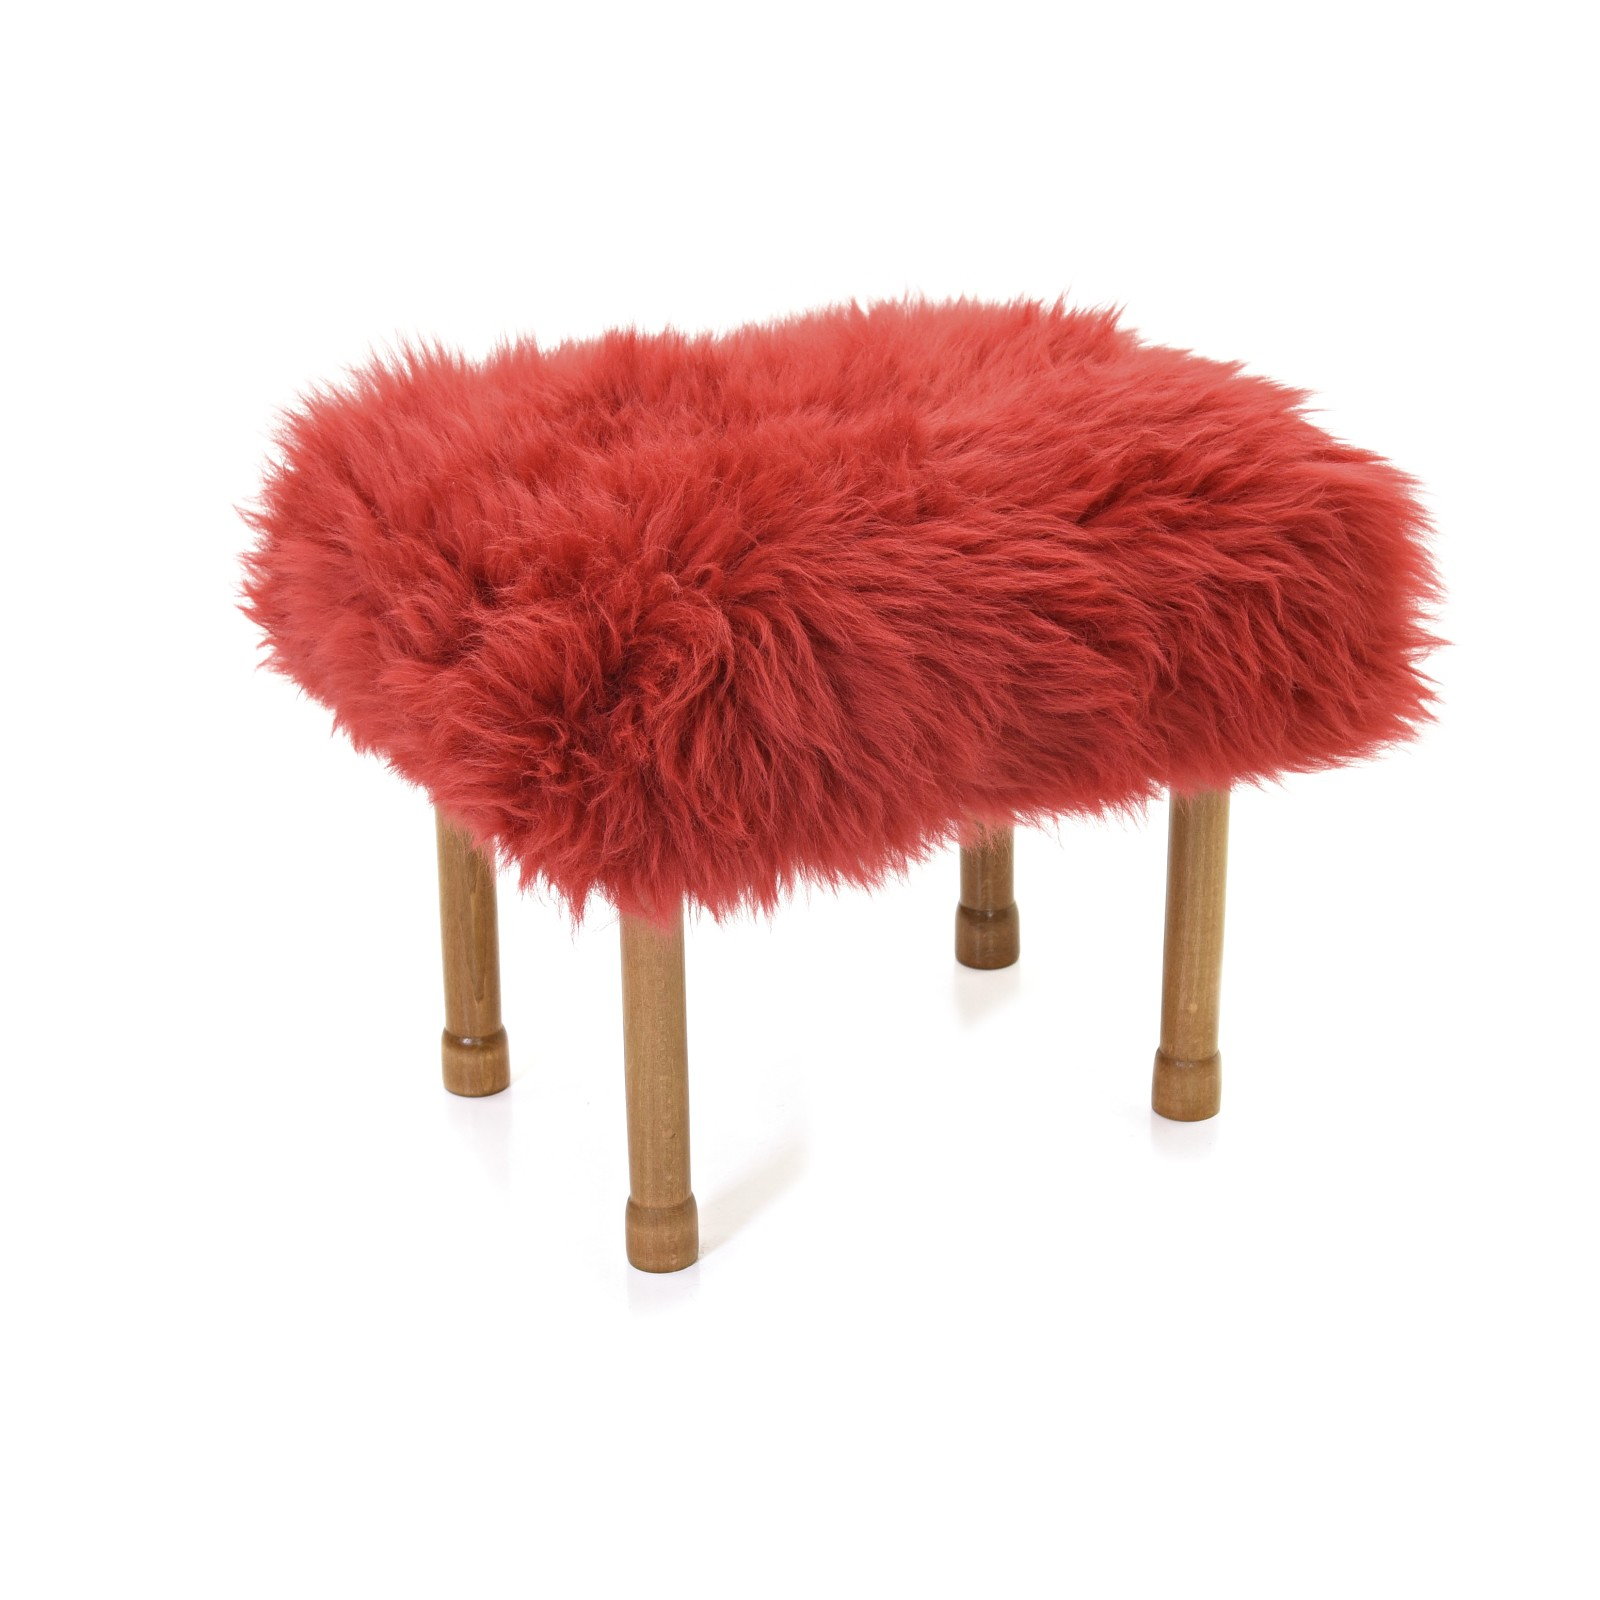 Myfanwy Sheepskin Footstool Dragon Red